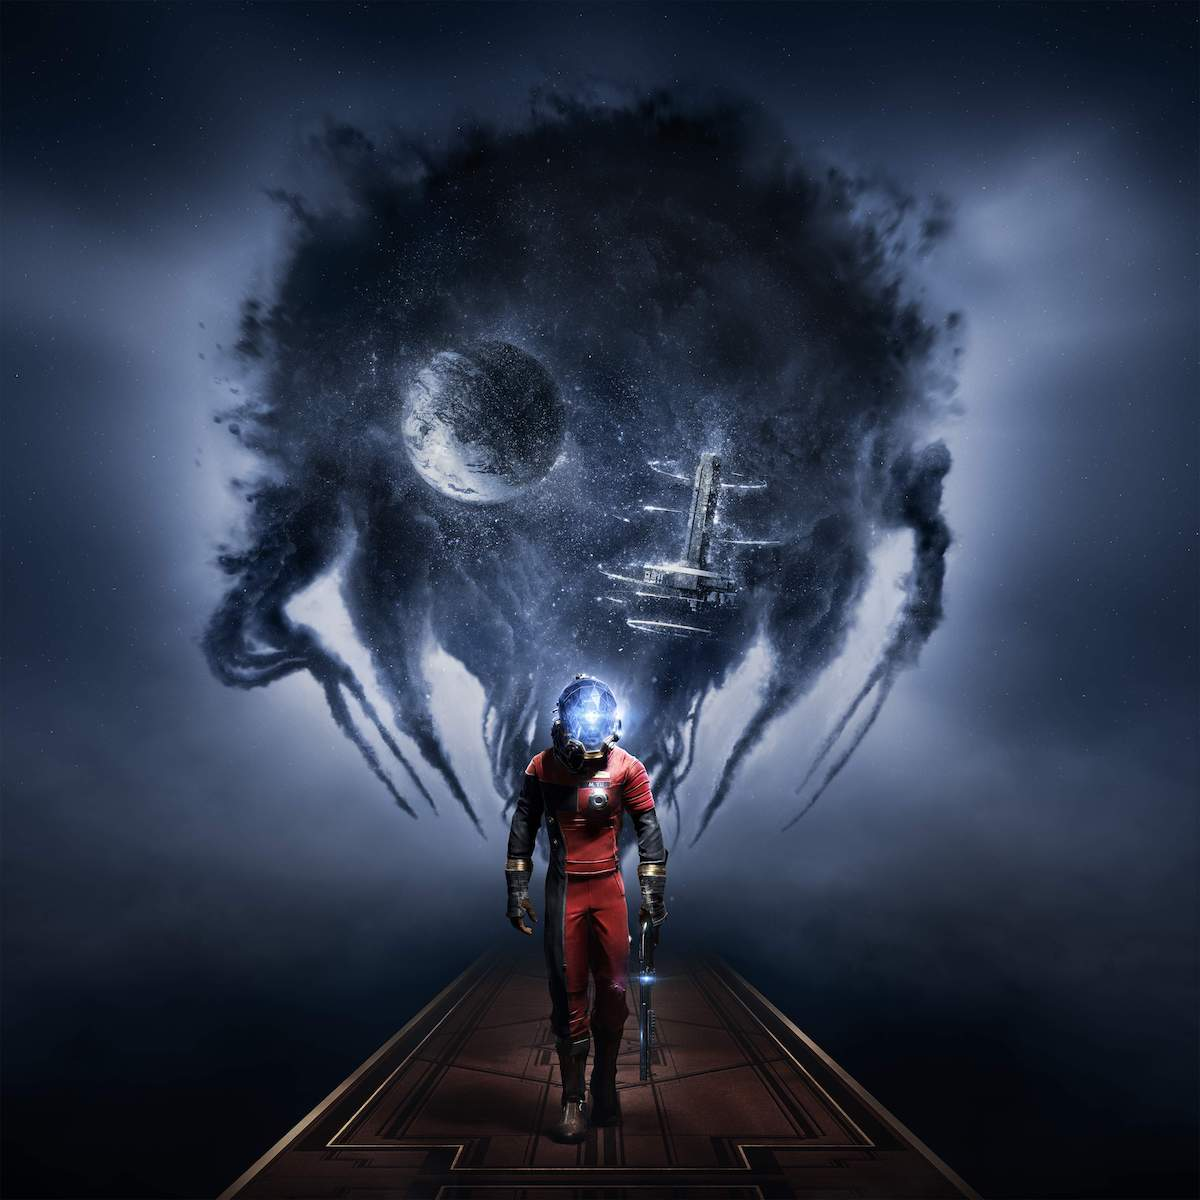 Prey by Mick Gordon